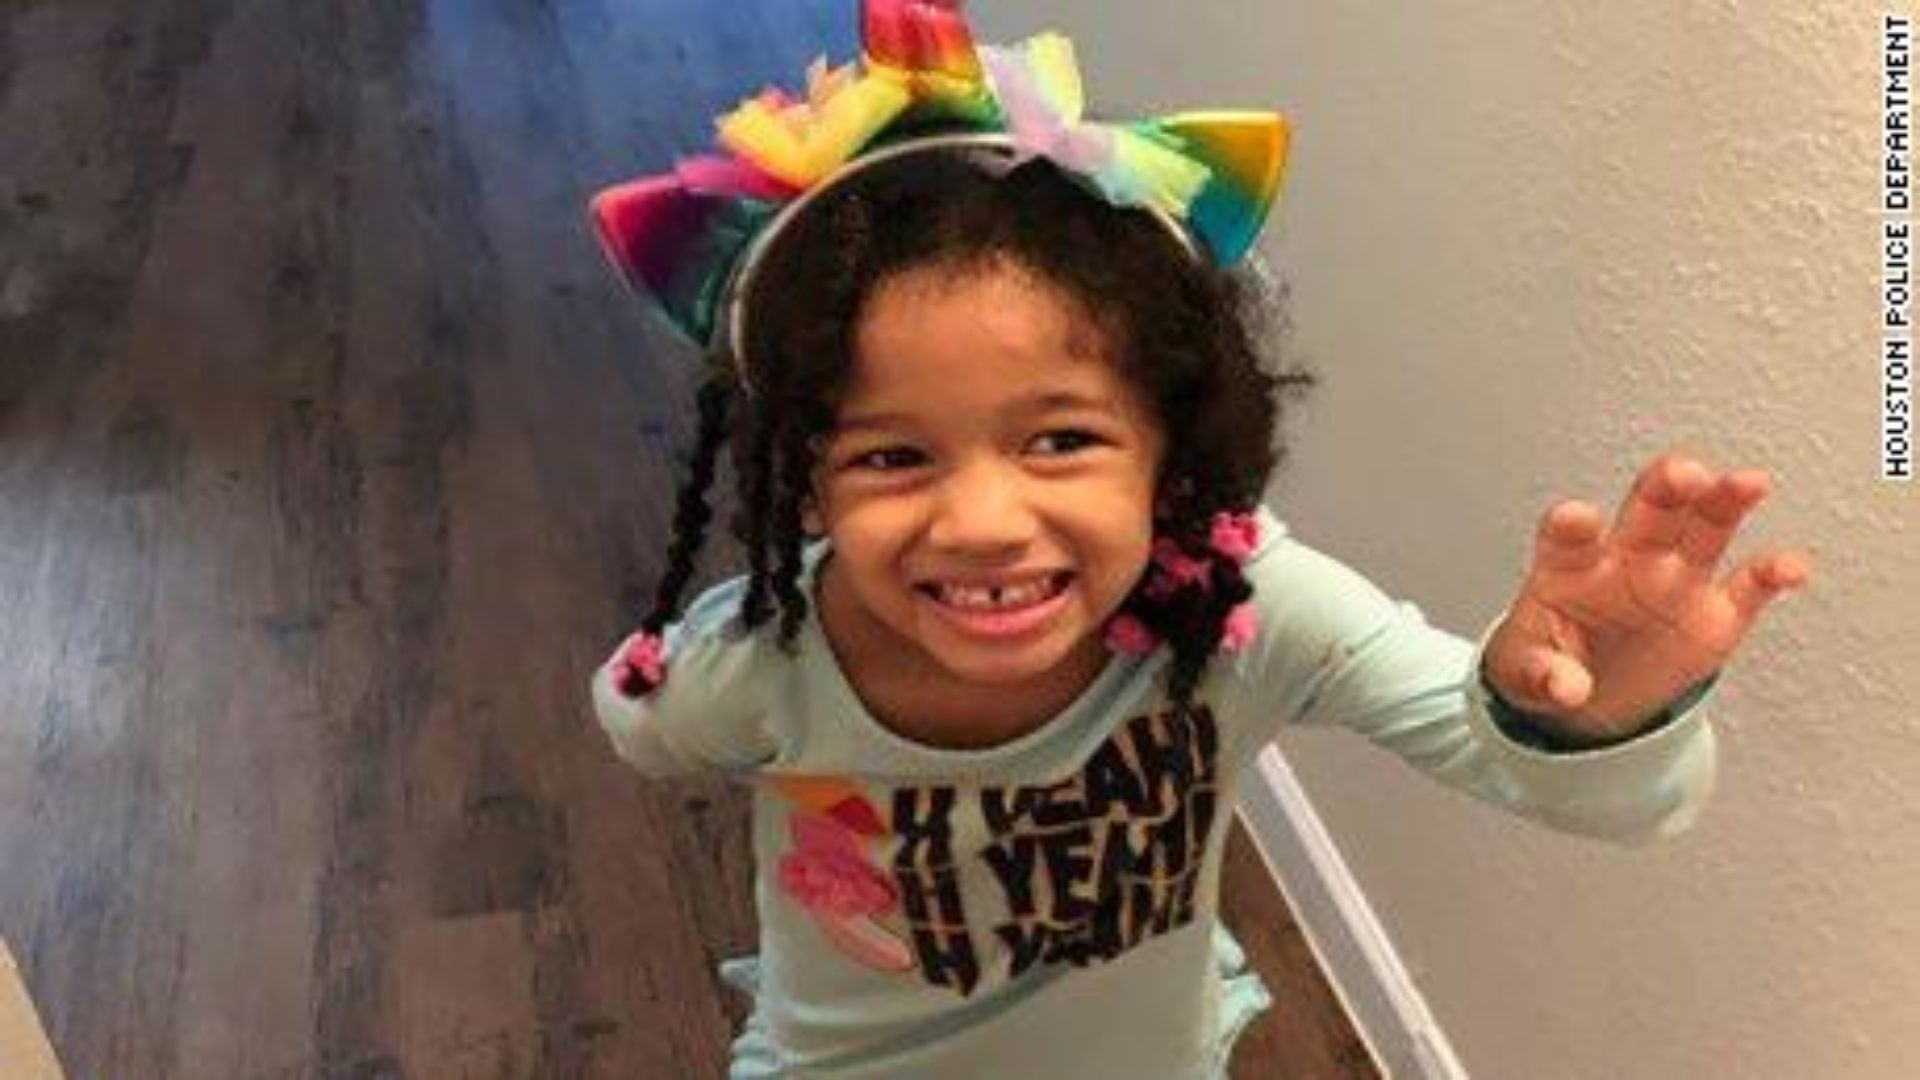 Texas Sculptor Crafts Statue Of Maleah Davis In Memory Of Children Taken Too Soon